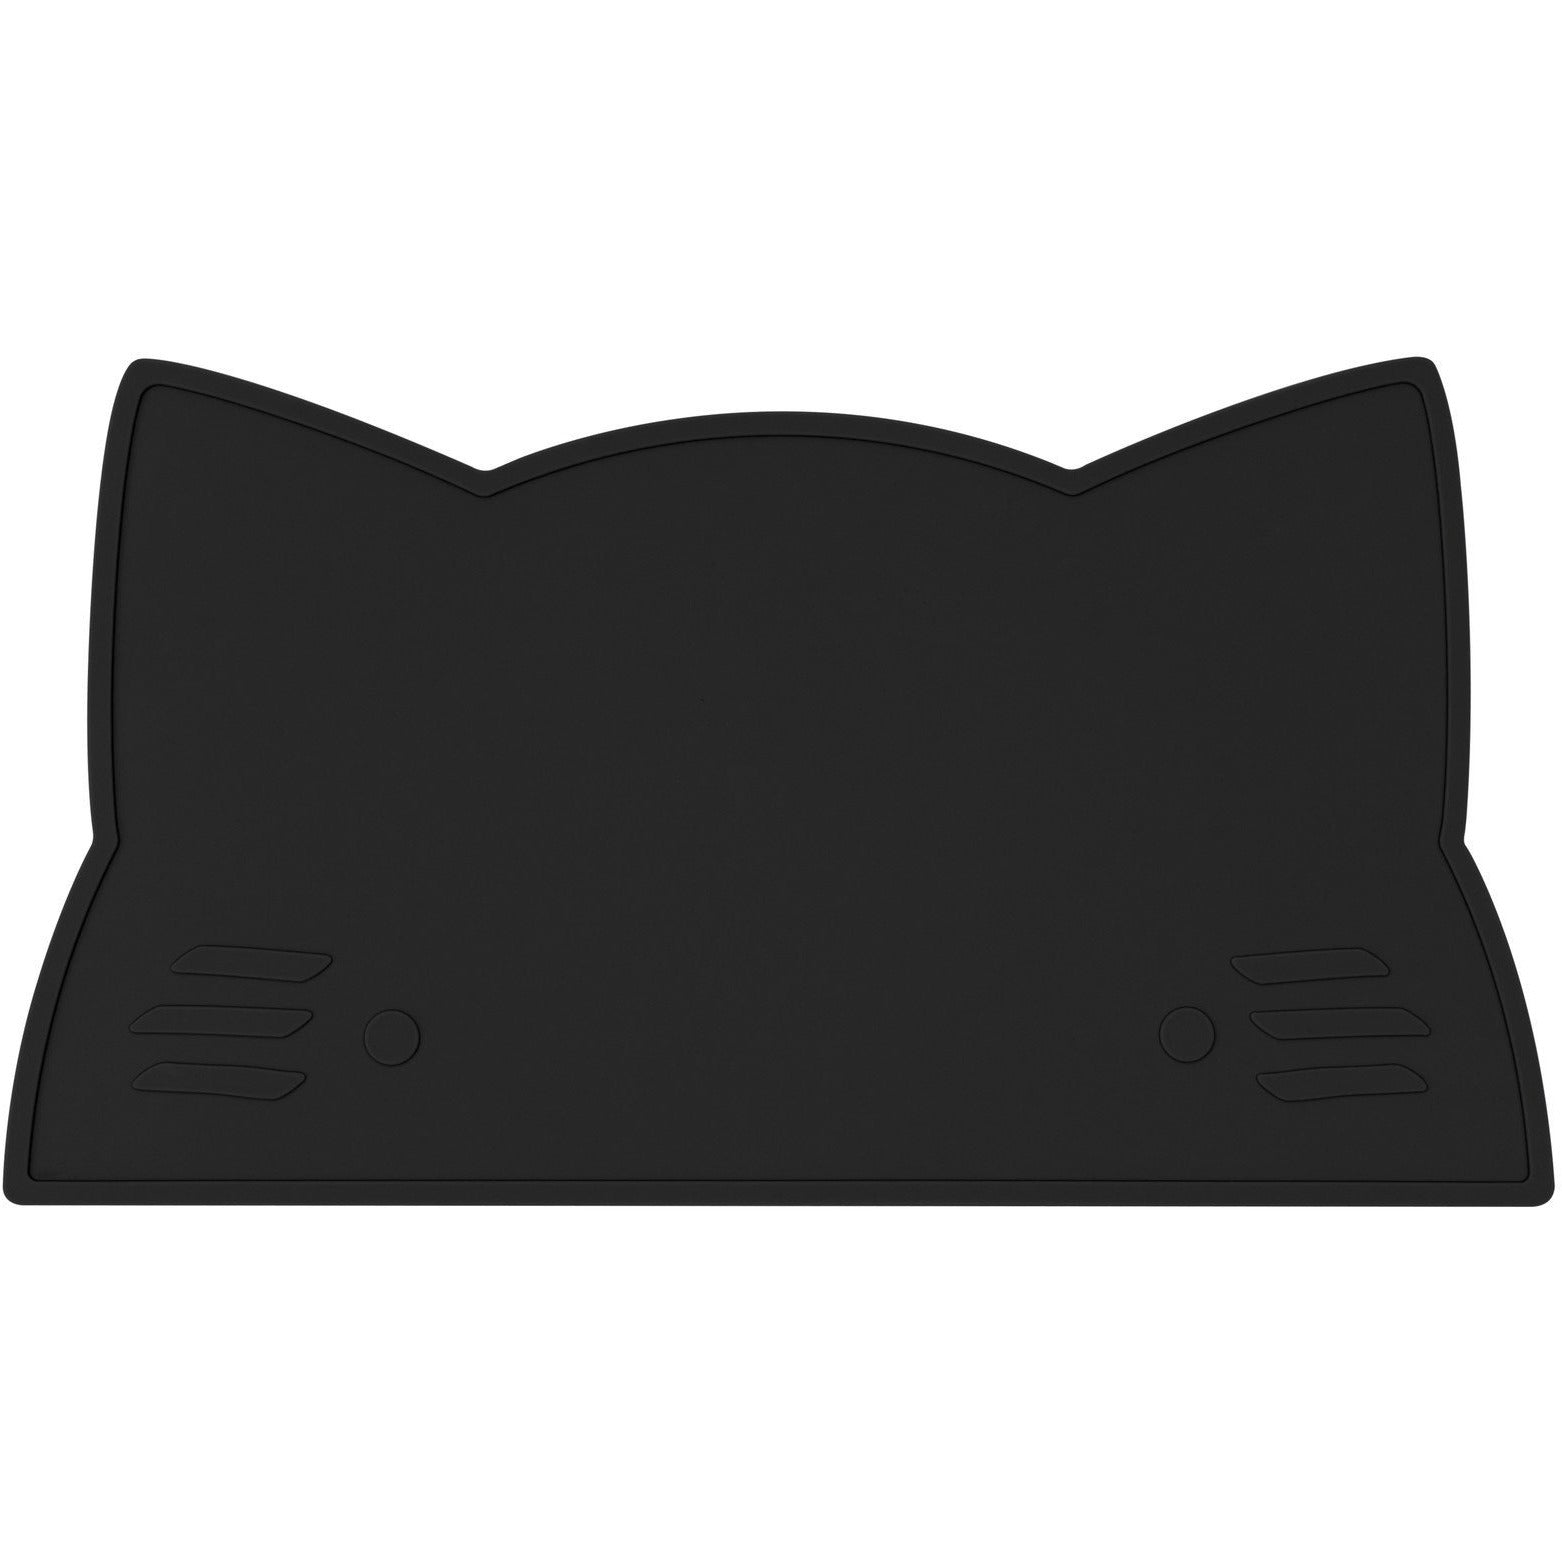 We Might Be Tiny Cat Placemat - Black